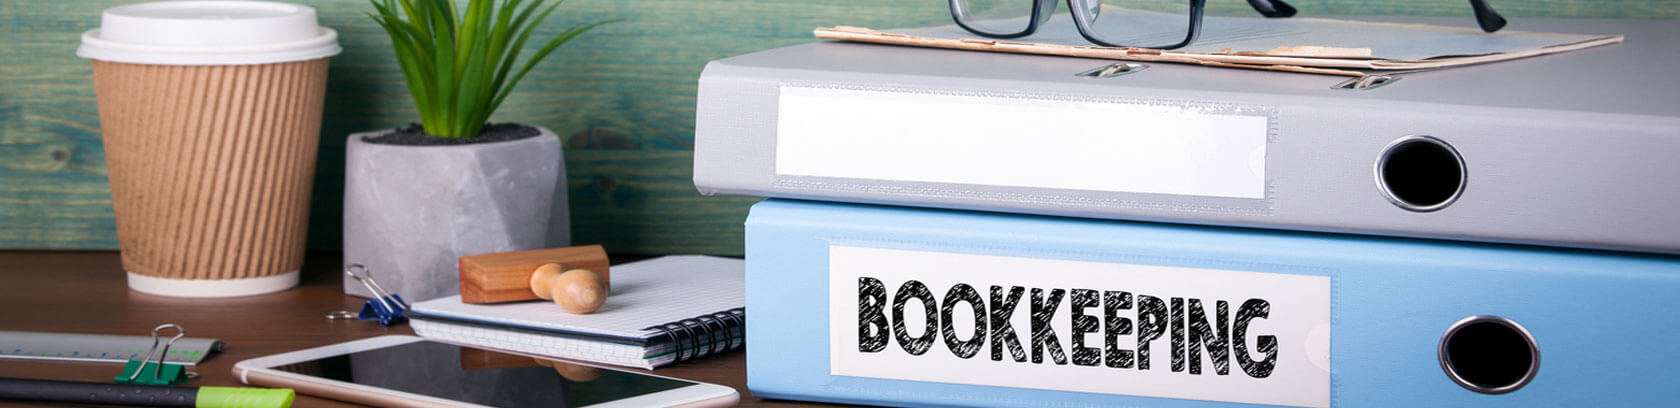 Bookkeeping course in singapore